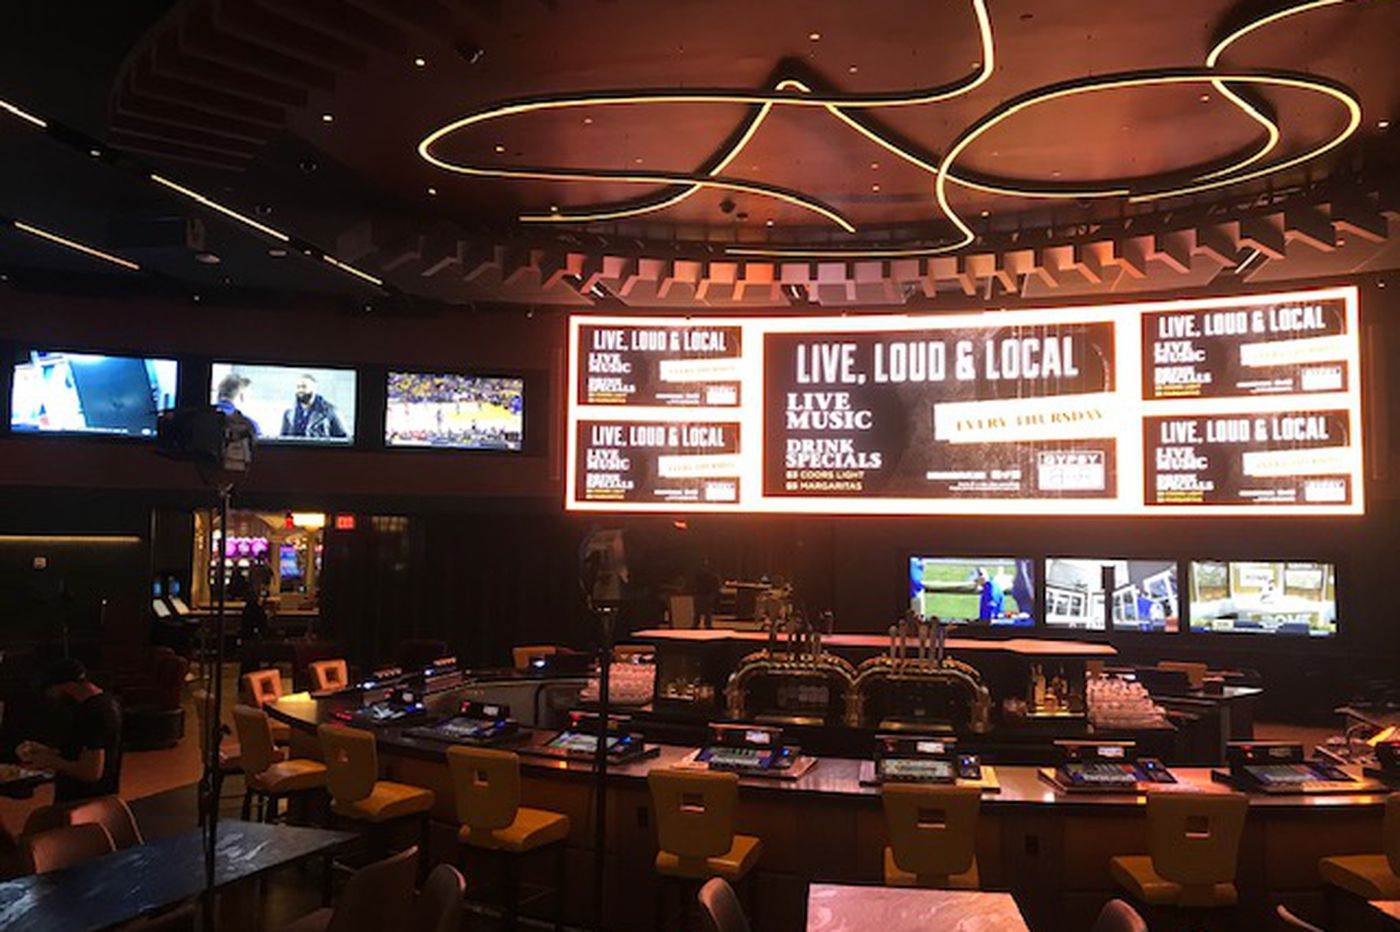 Borgata and Bally's take different approaches to new sportsbooks